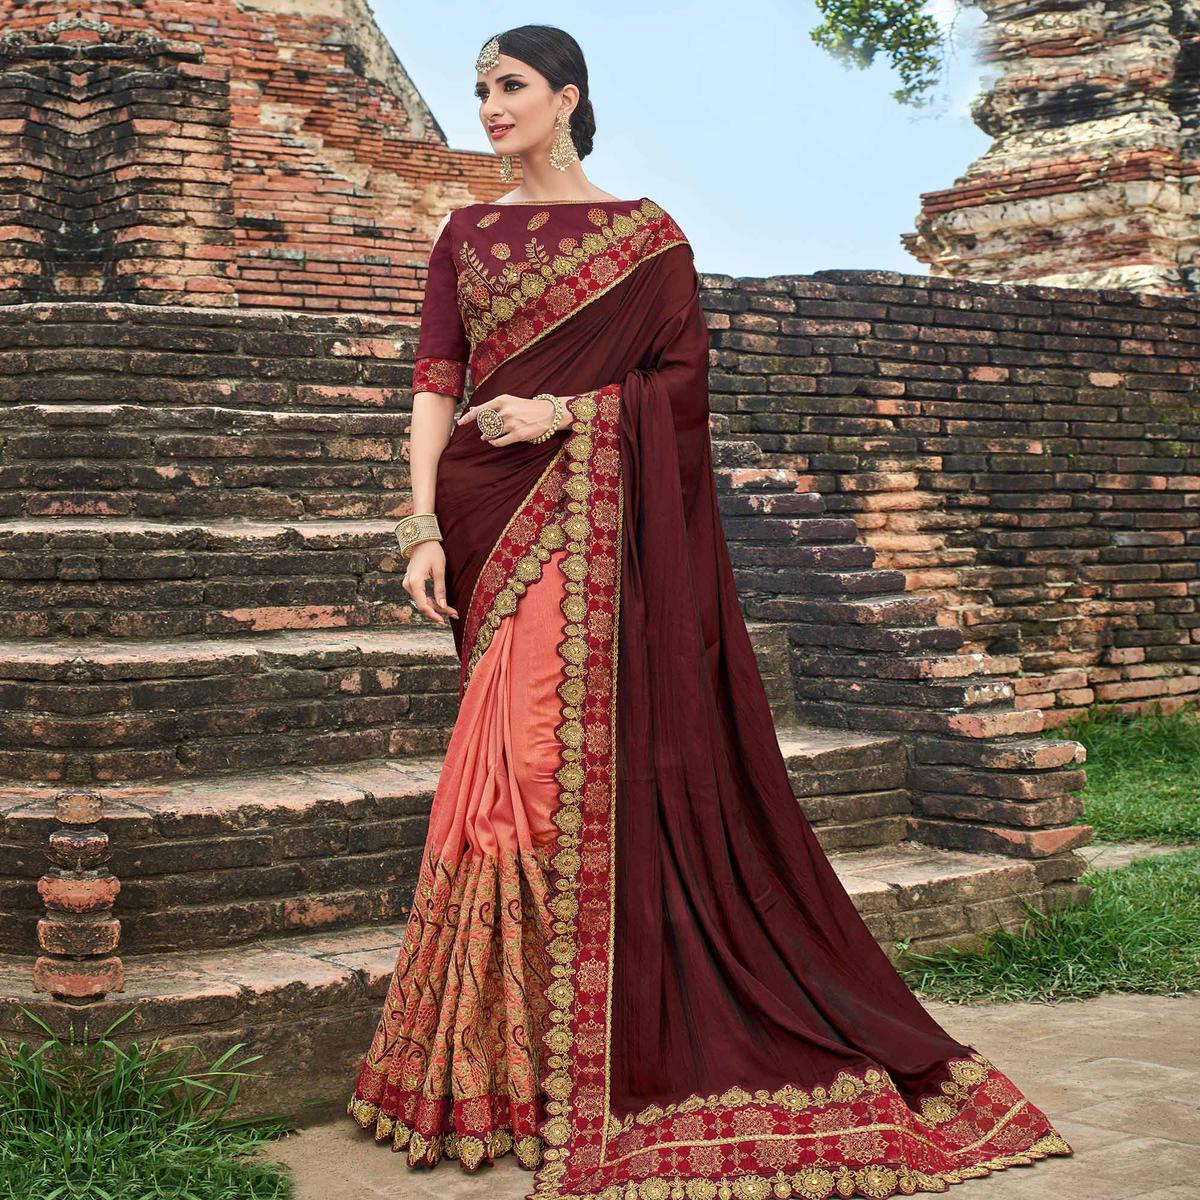 Exceptional Maroon - Peach Colored Party Wear Embroidered Raw Silk Saree